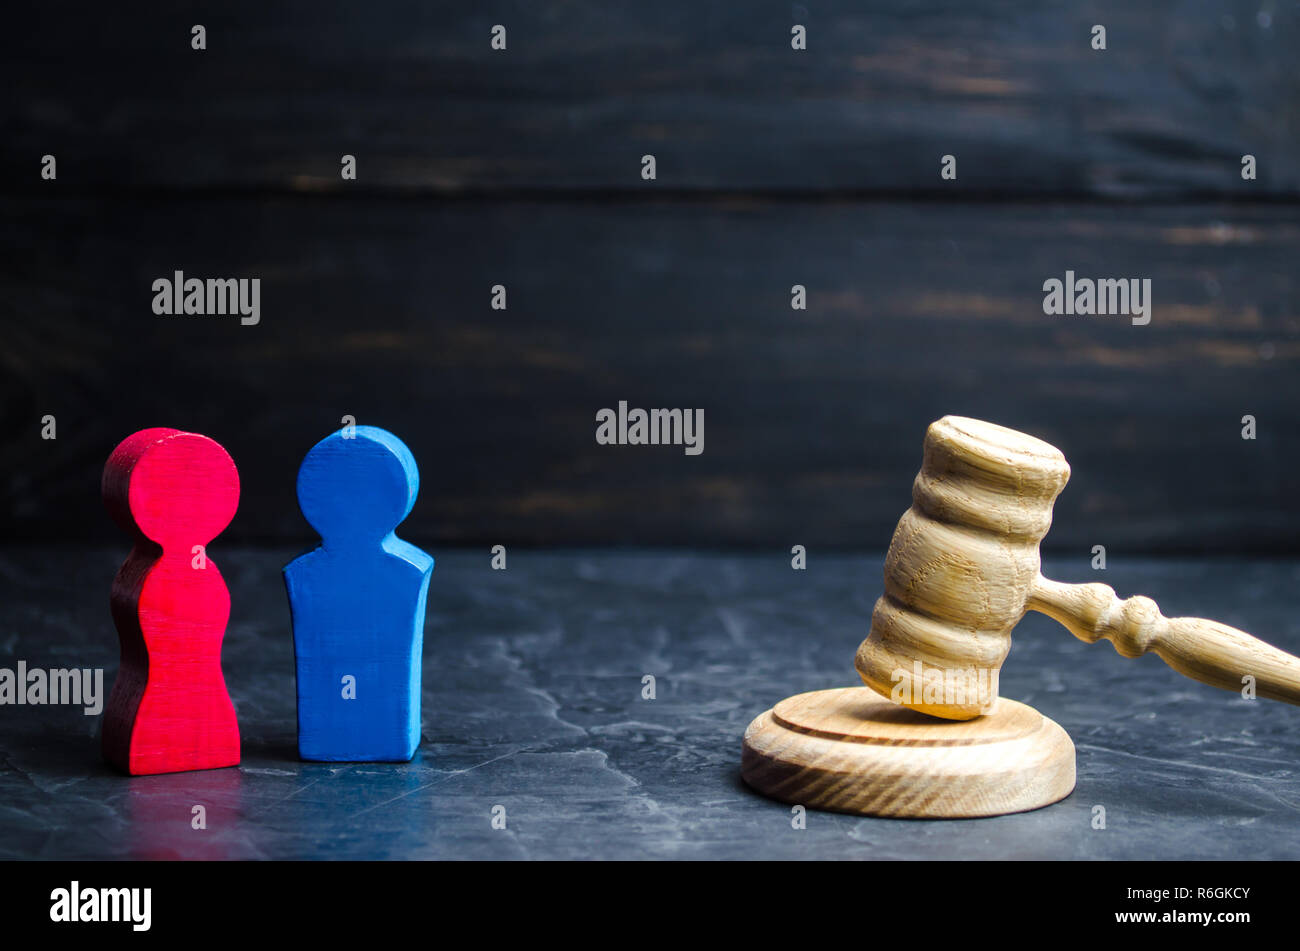 wooden figures of a man and a woman are standing near the judge's gavel. inequality concept : gender pay gap. divorce. Division of property in court.  - Stock Image